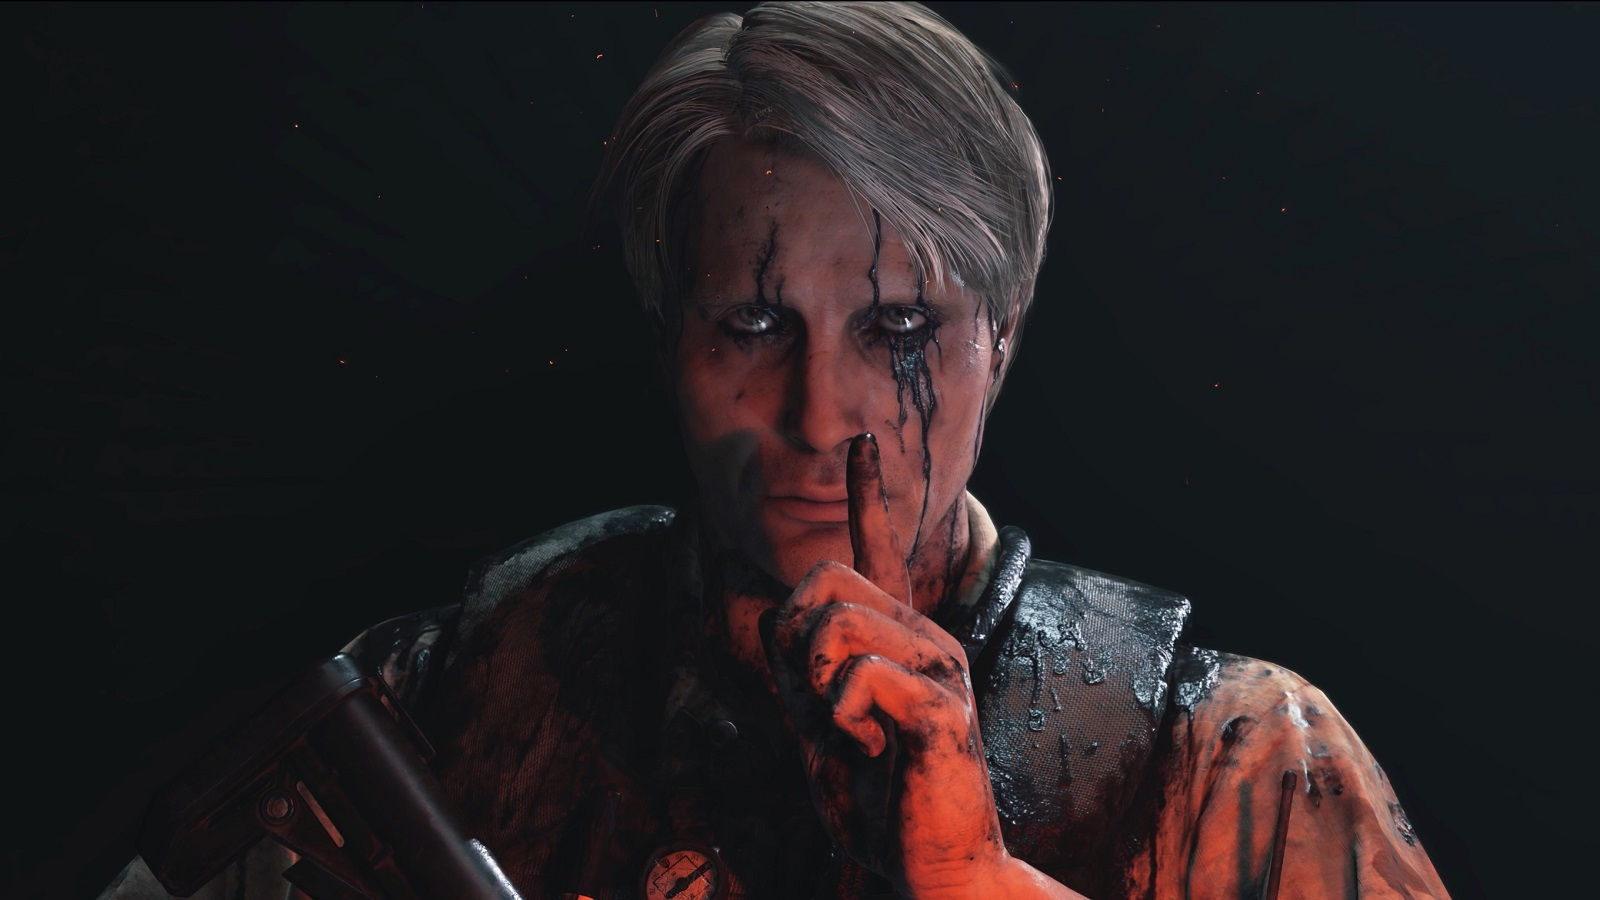 Композитор Death Stranding взялся за новый проект, но не для Kojima Productions